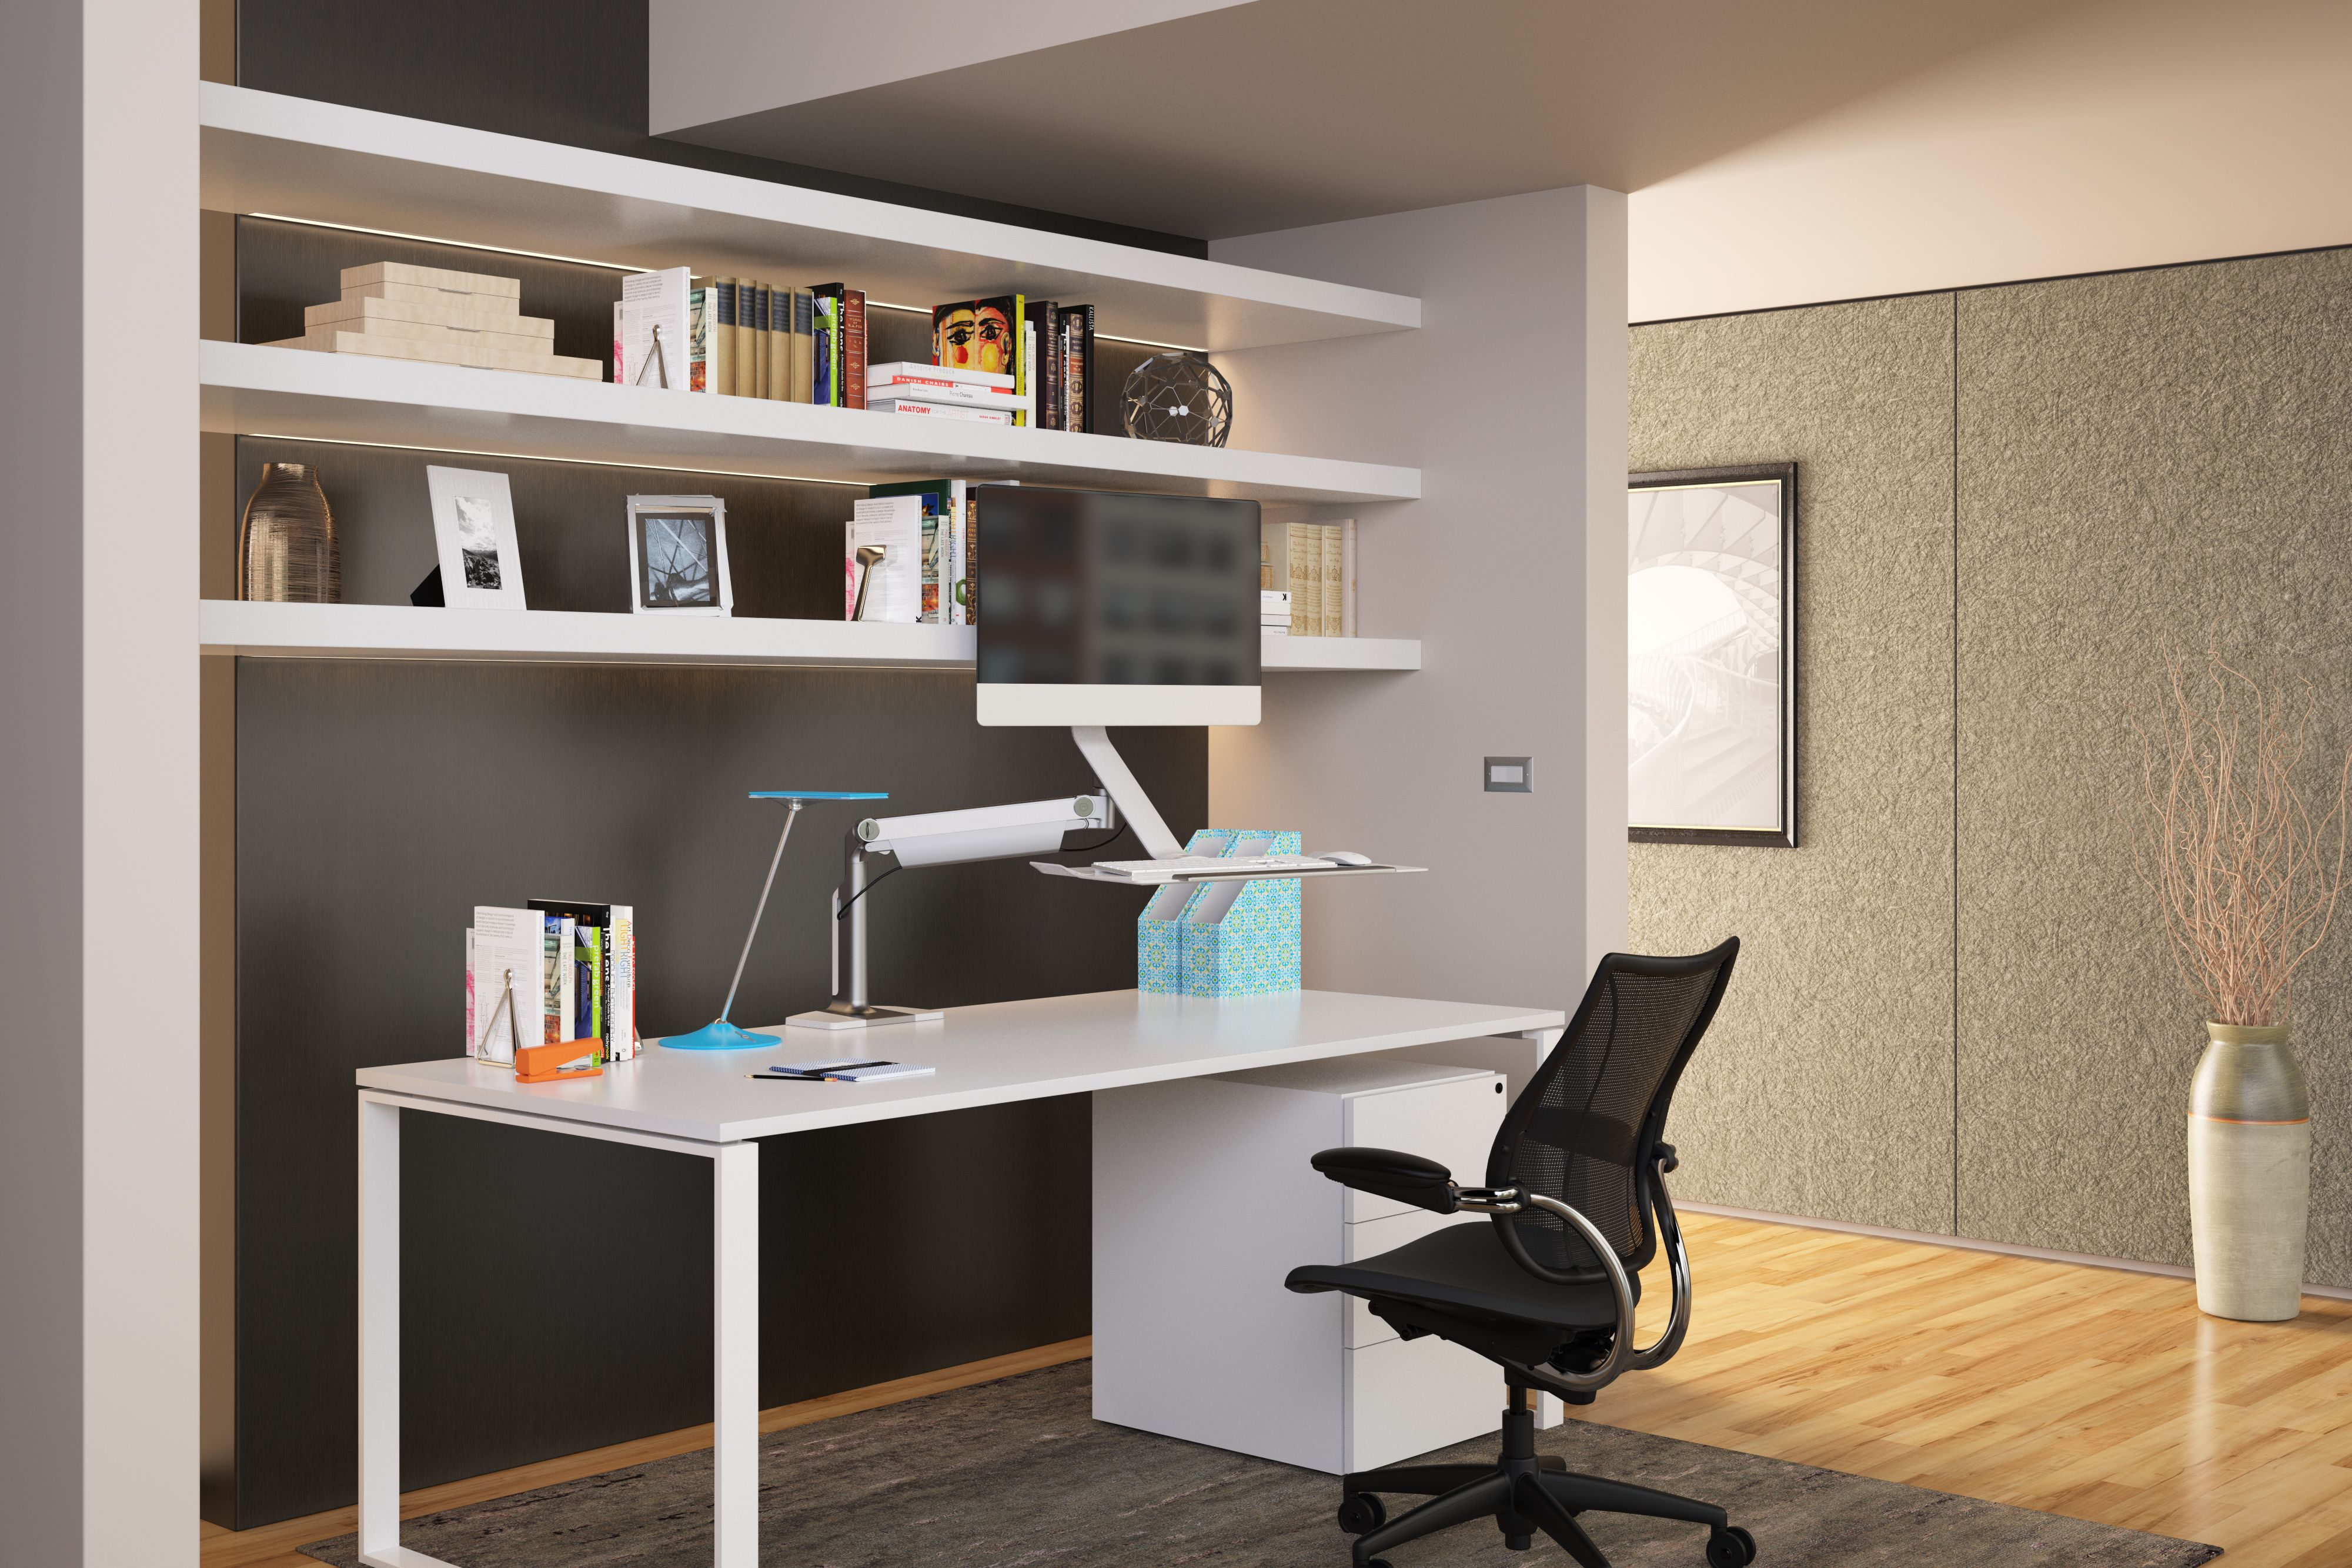 Ergonomic home office Small Humanscale Horizon Table Light Ergonomic Office Home Office Ideas Inspiration Sit Stand Standing Desk Sustainable Design Ebay Humanscale Horizon Table Light Ergonomic Office Home Office